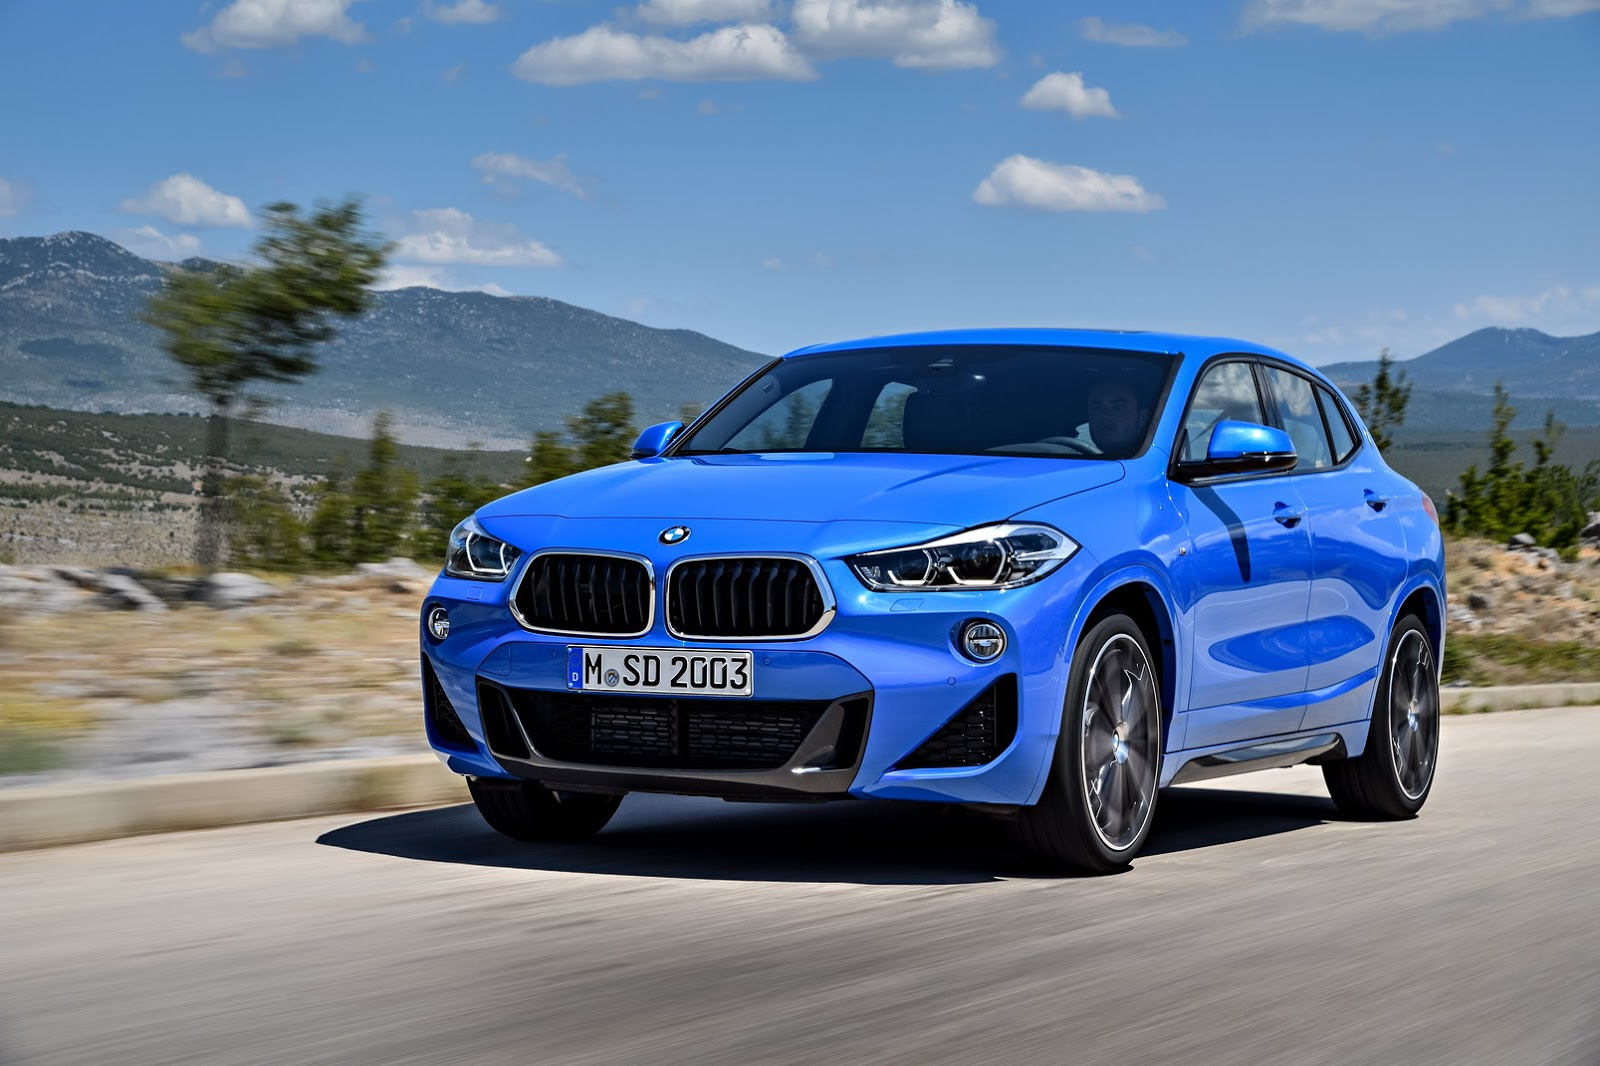 Bmw X2 2018 Dimensions >> 2018 BMW X2 (F39) Goes Official, Boasts Head-Turning Exterior Design - autoevolution